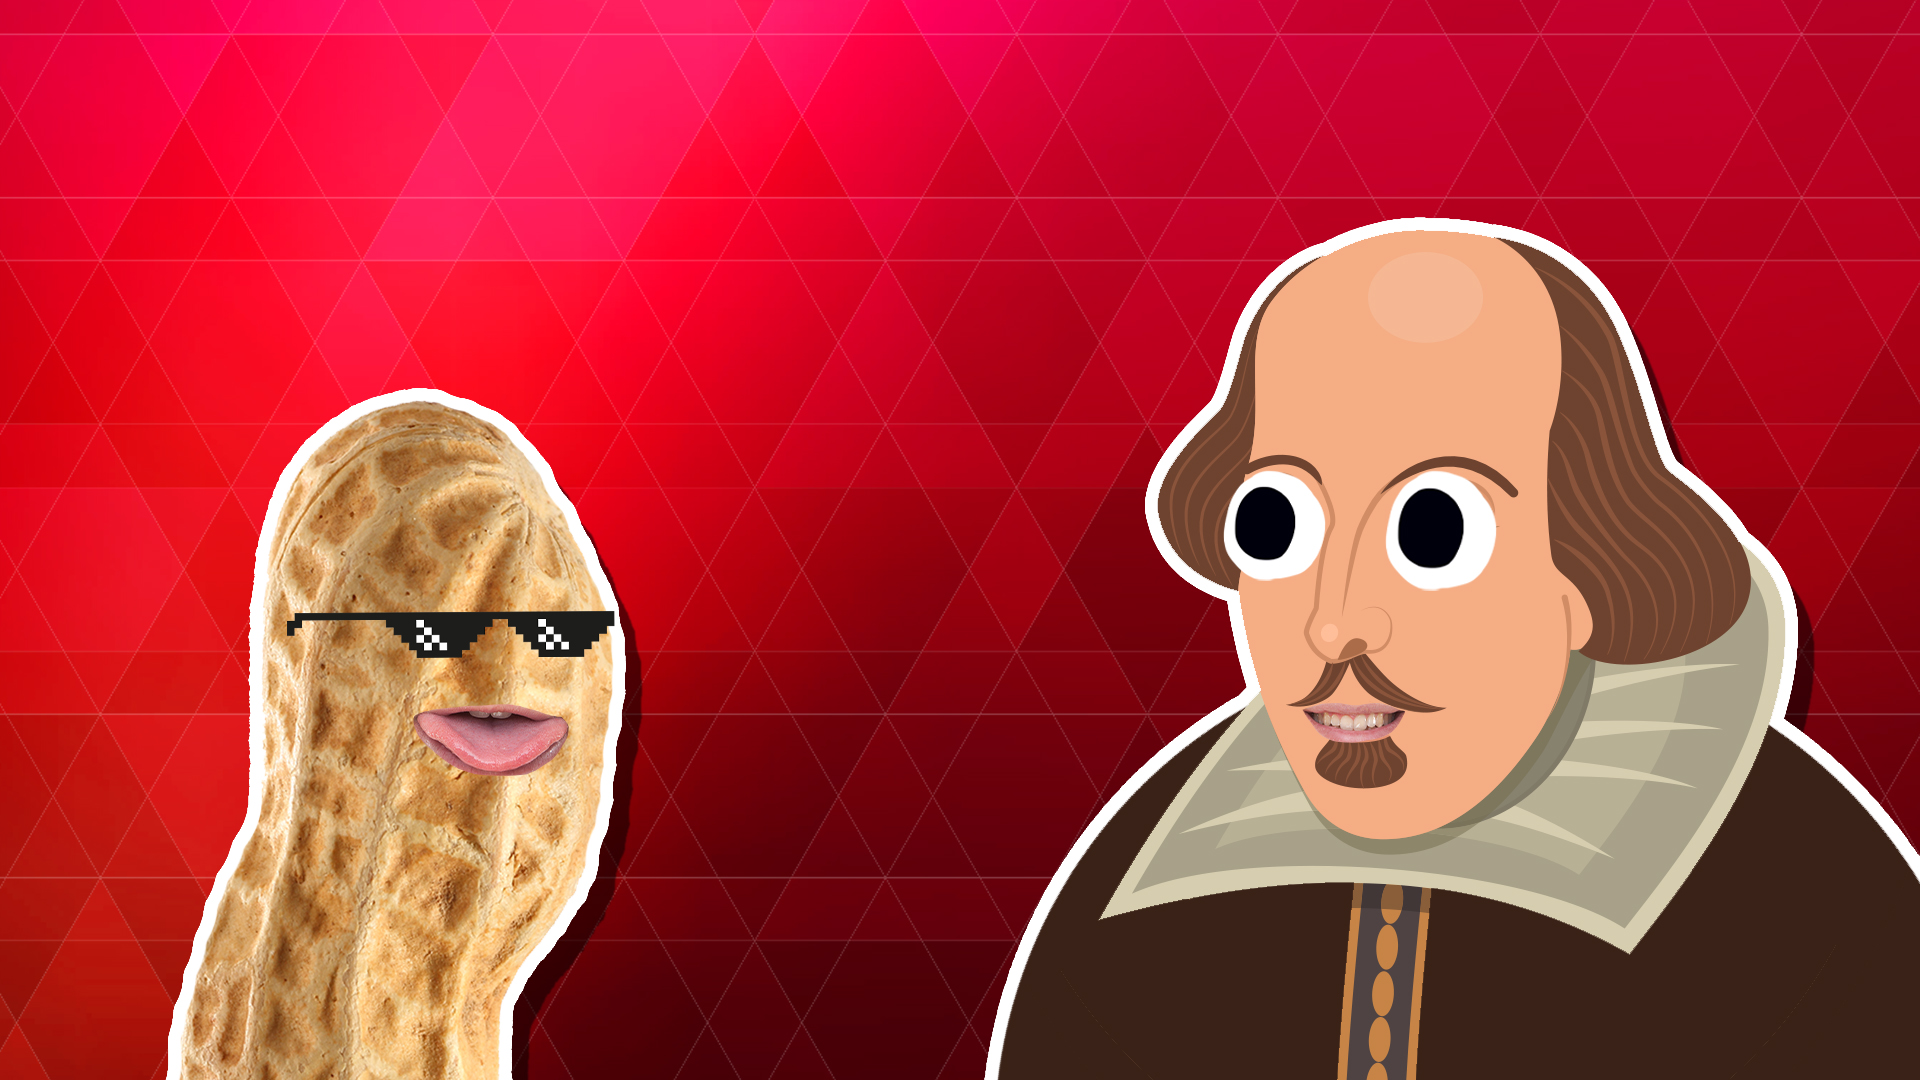 A peanut and William Shakespeare